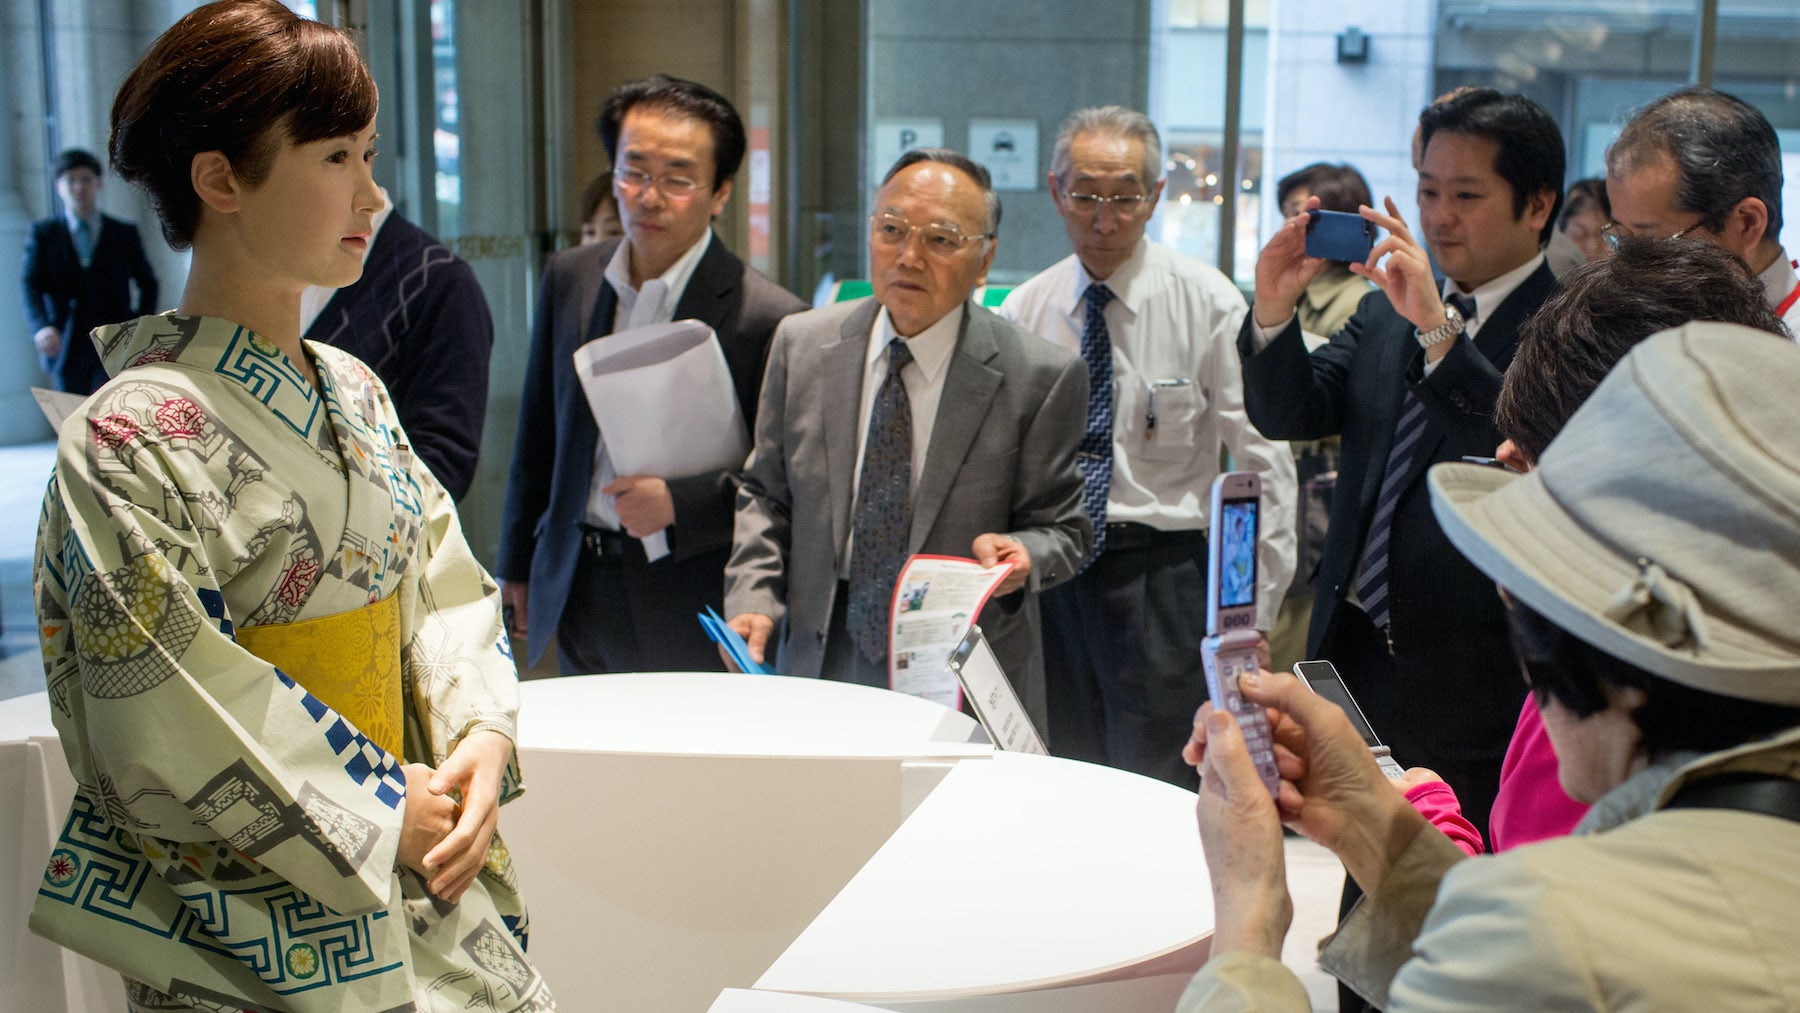 """Shoppers take photos of humanoid robot """"Aiko Chihira"""" at the Mitsukoshi department store   Source: Getty Images"""